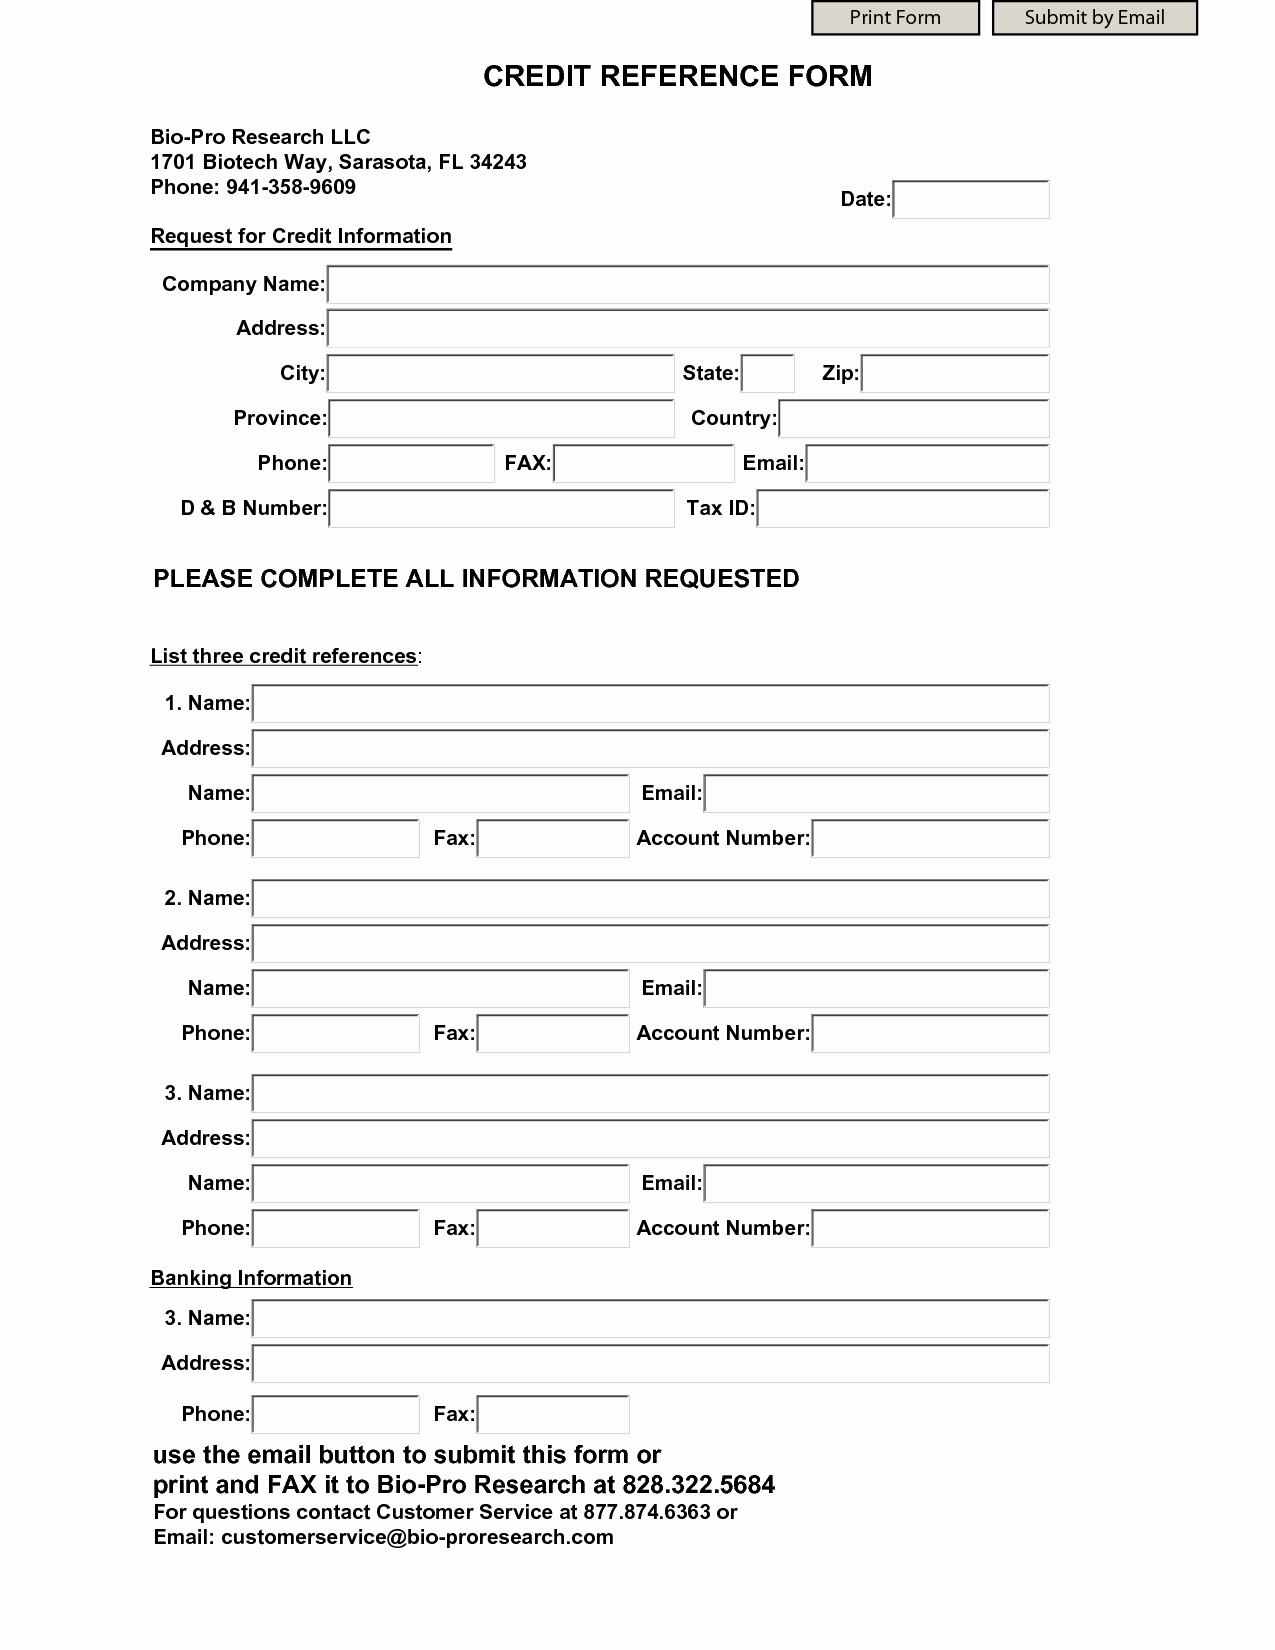 Reference Check form Template Lovely Credit Reference form